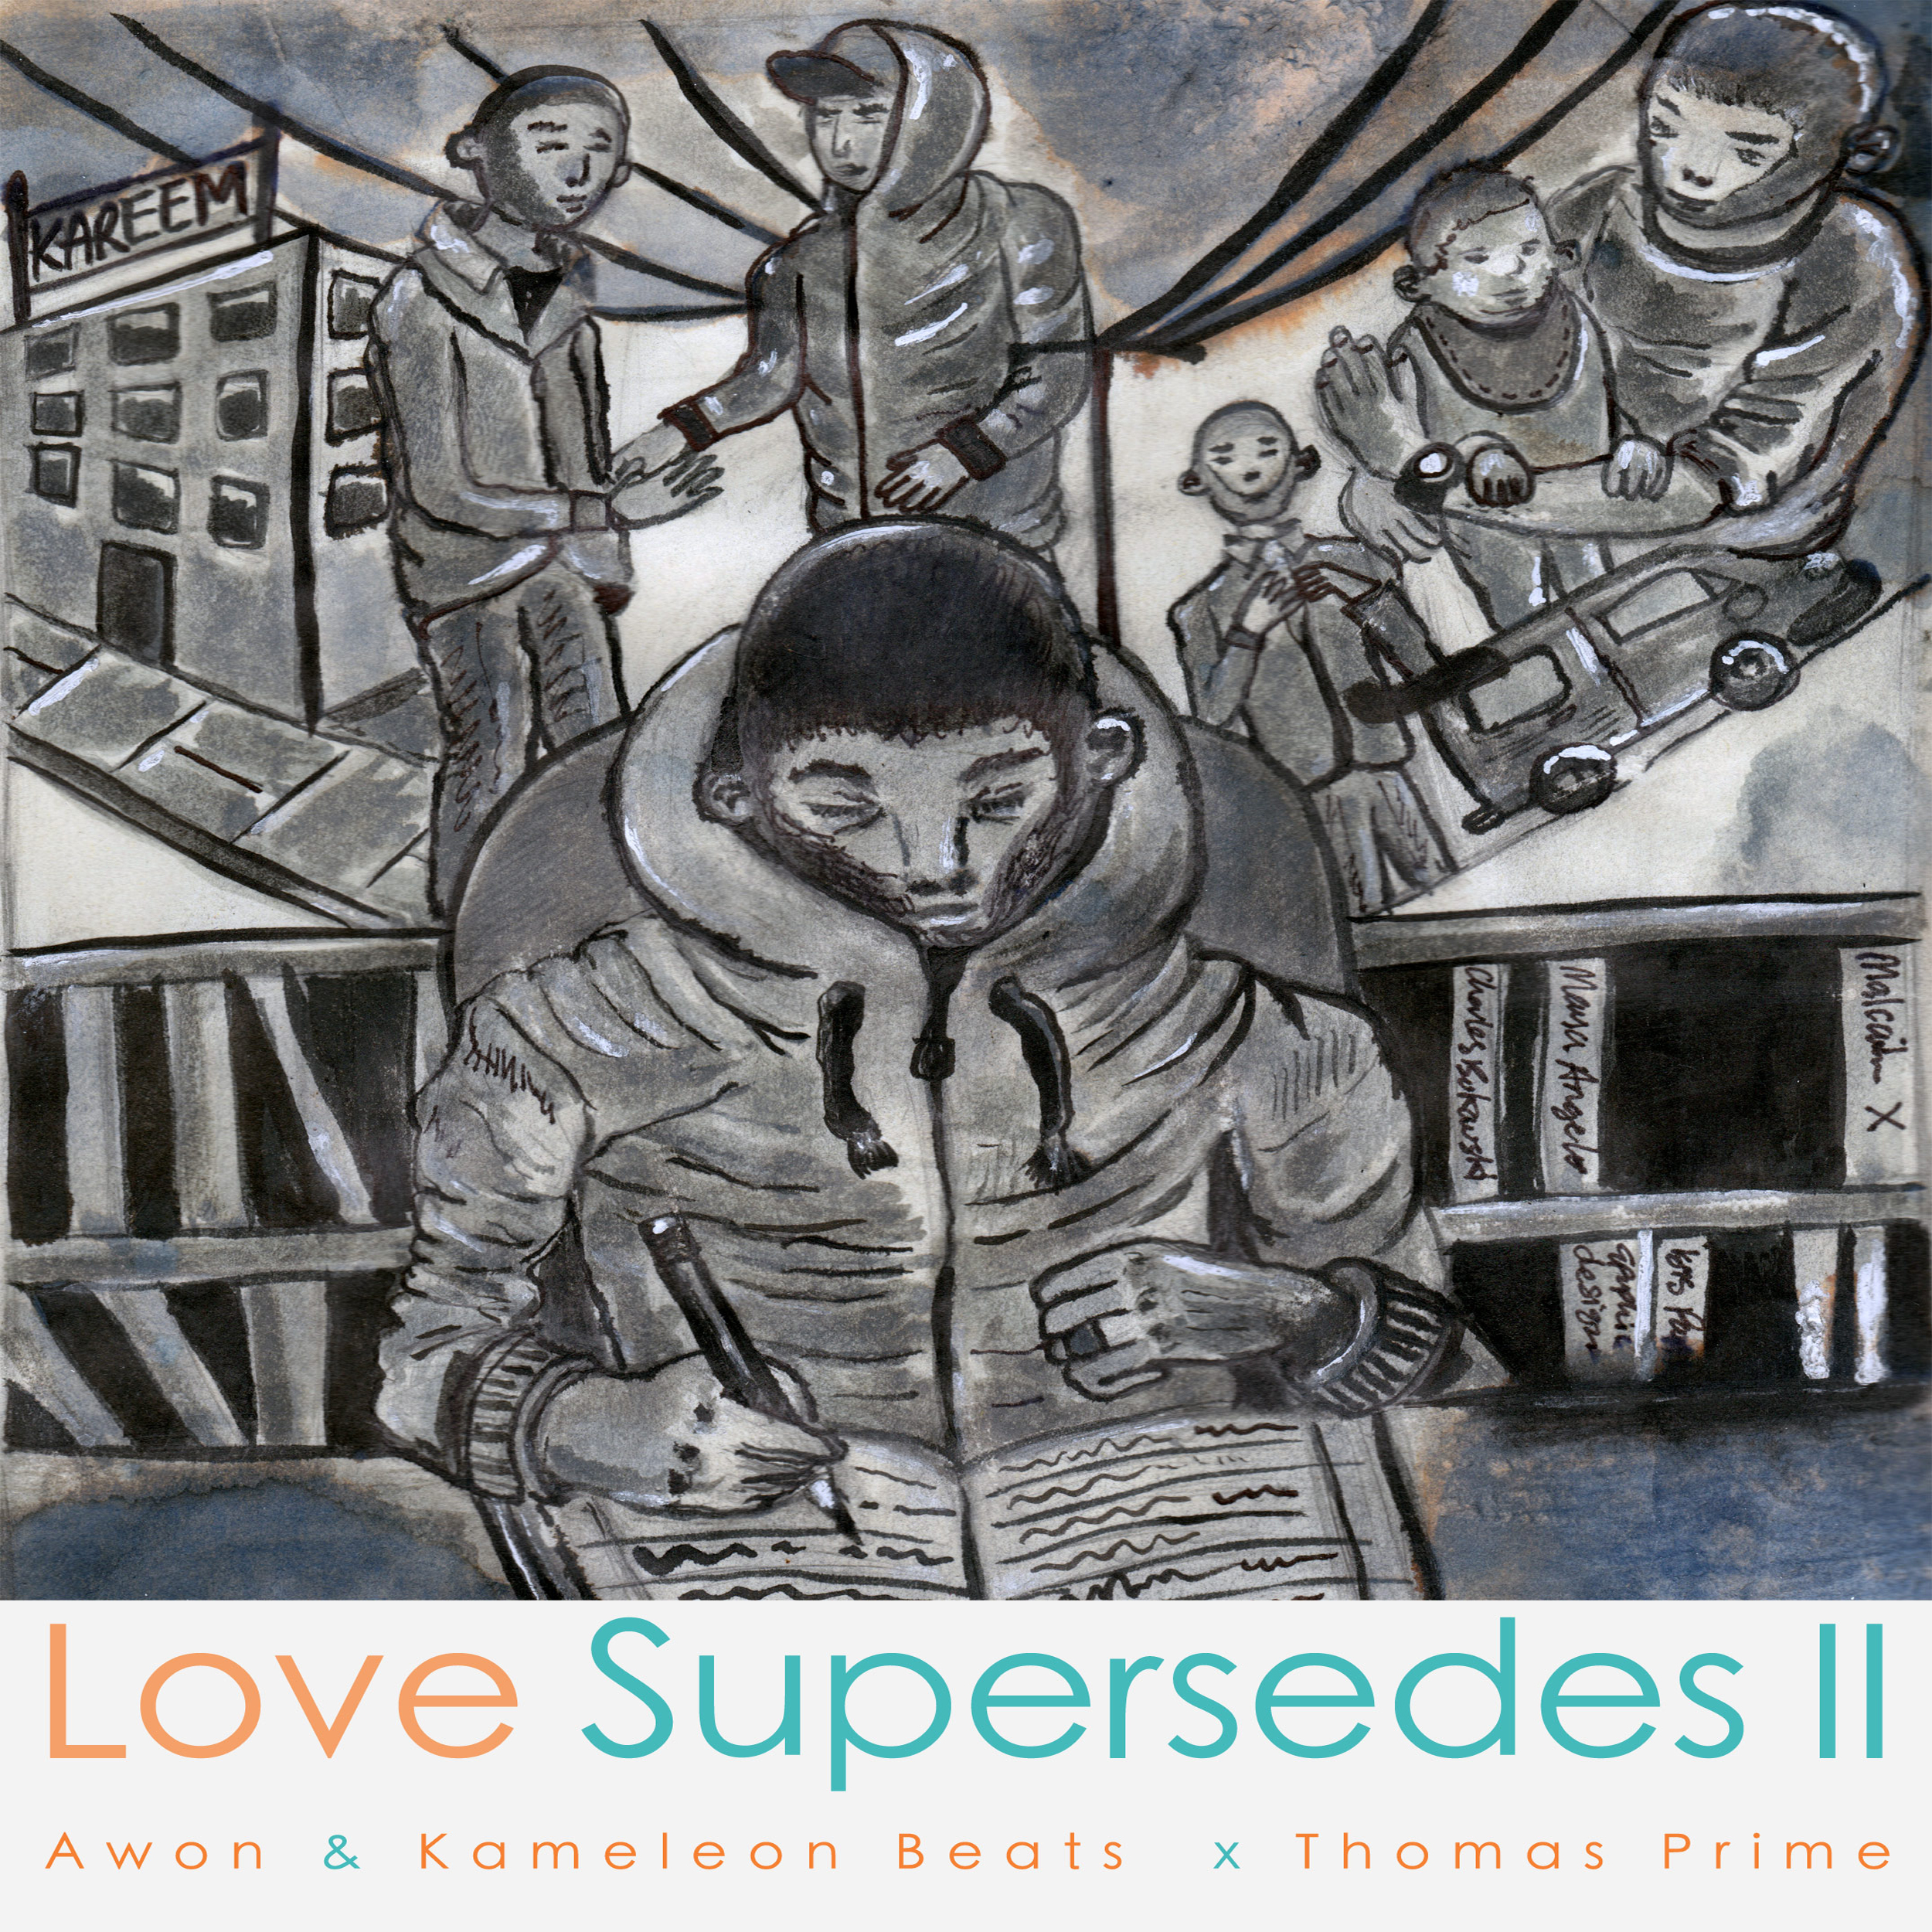 Awon x Kameleon Beats x Thomas Prime - Love Supersedes II